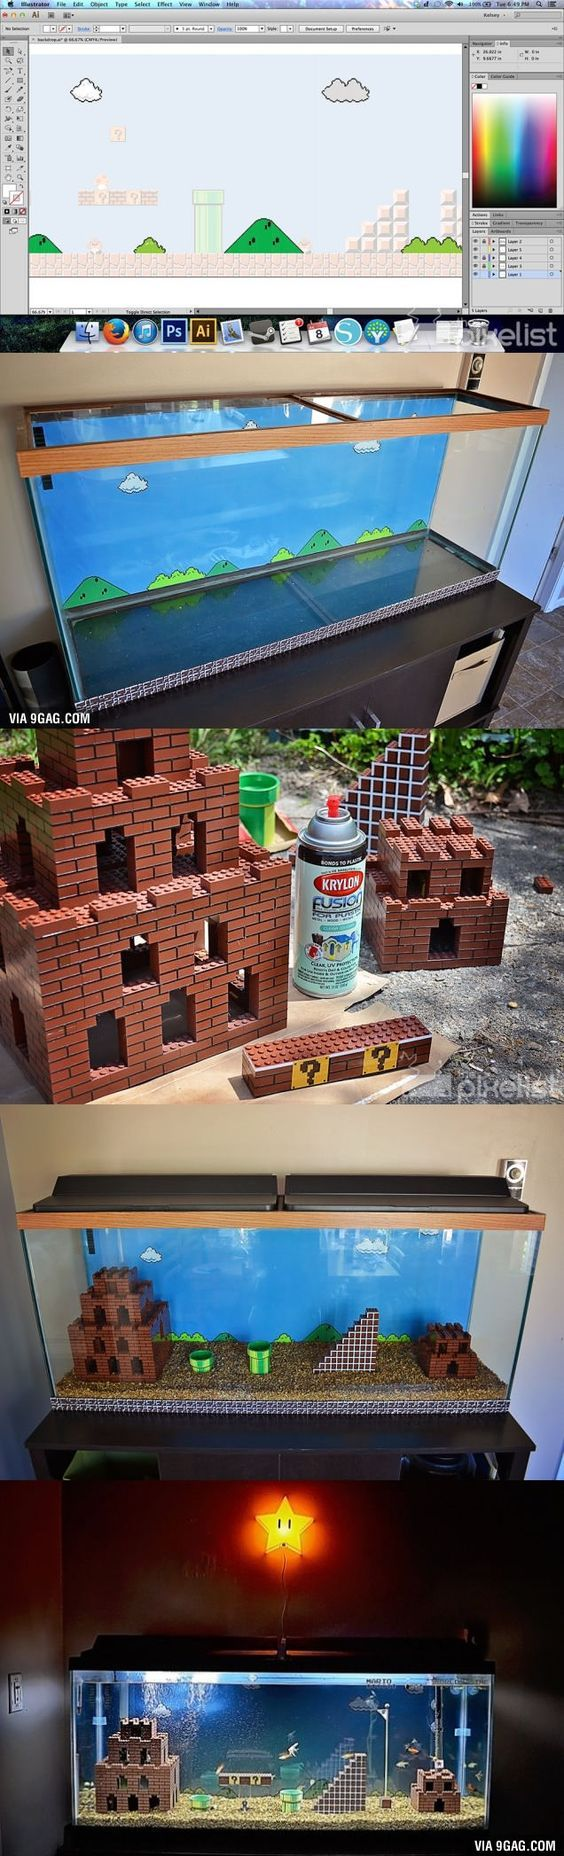 This Is How A Super Mario Bros. Aquarium Get Built From Scratch!: